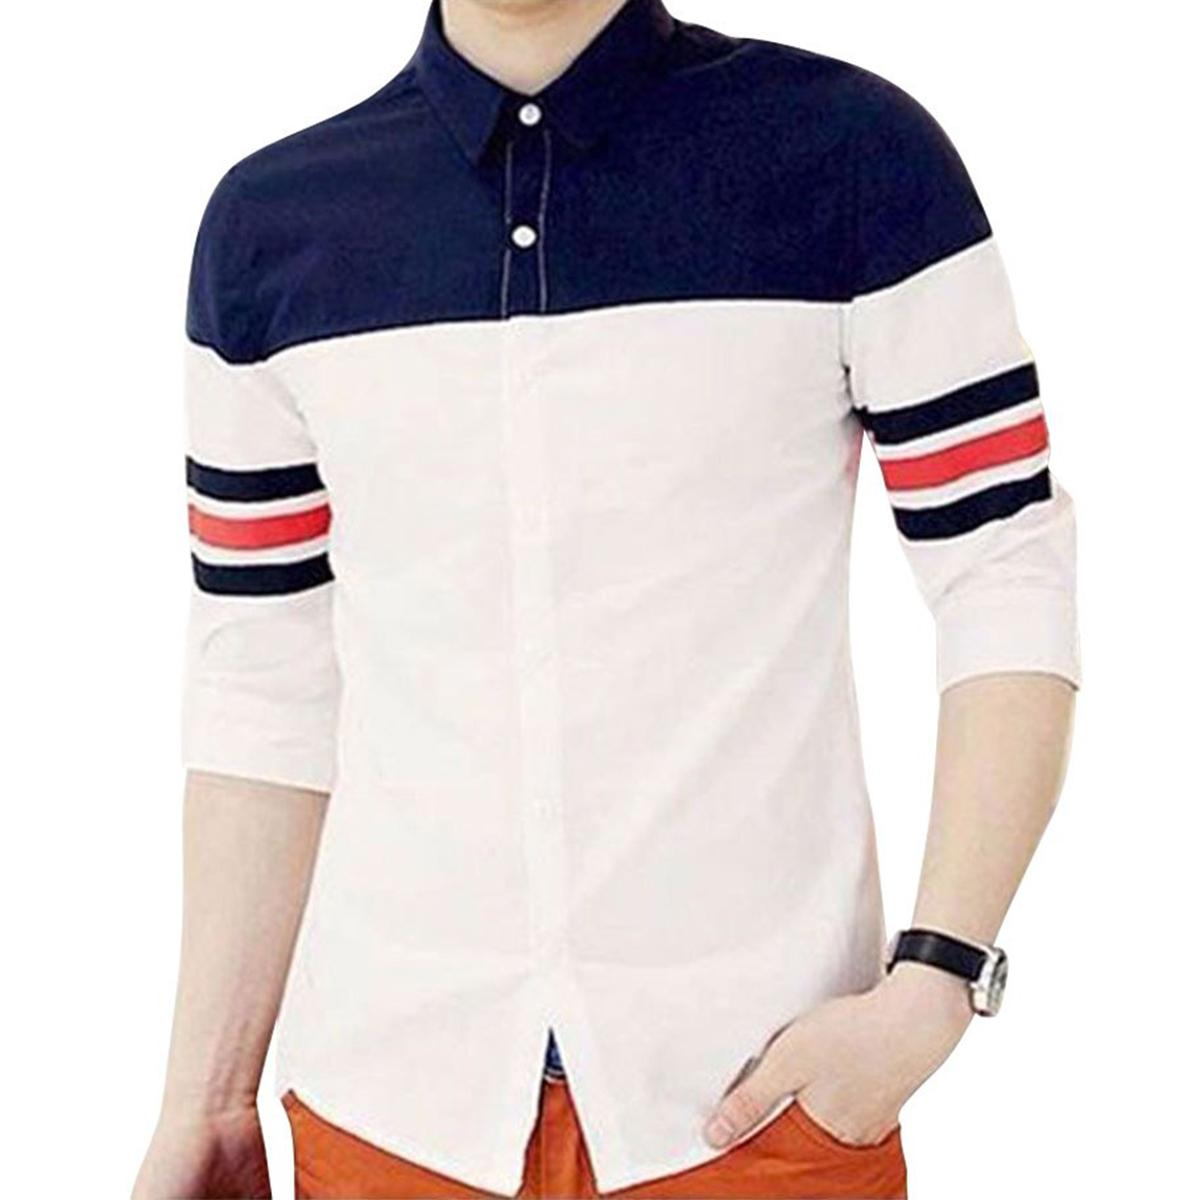 83a2f668 Shirts For Men - Buy Men's Shirts In Bangladesh Online | Daraz.com.bd